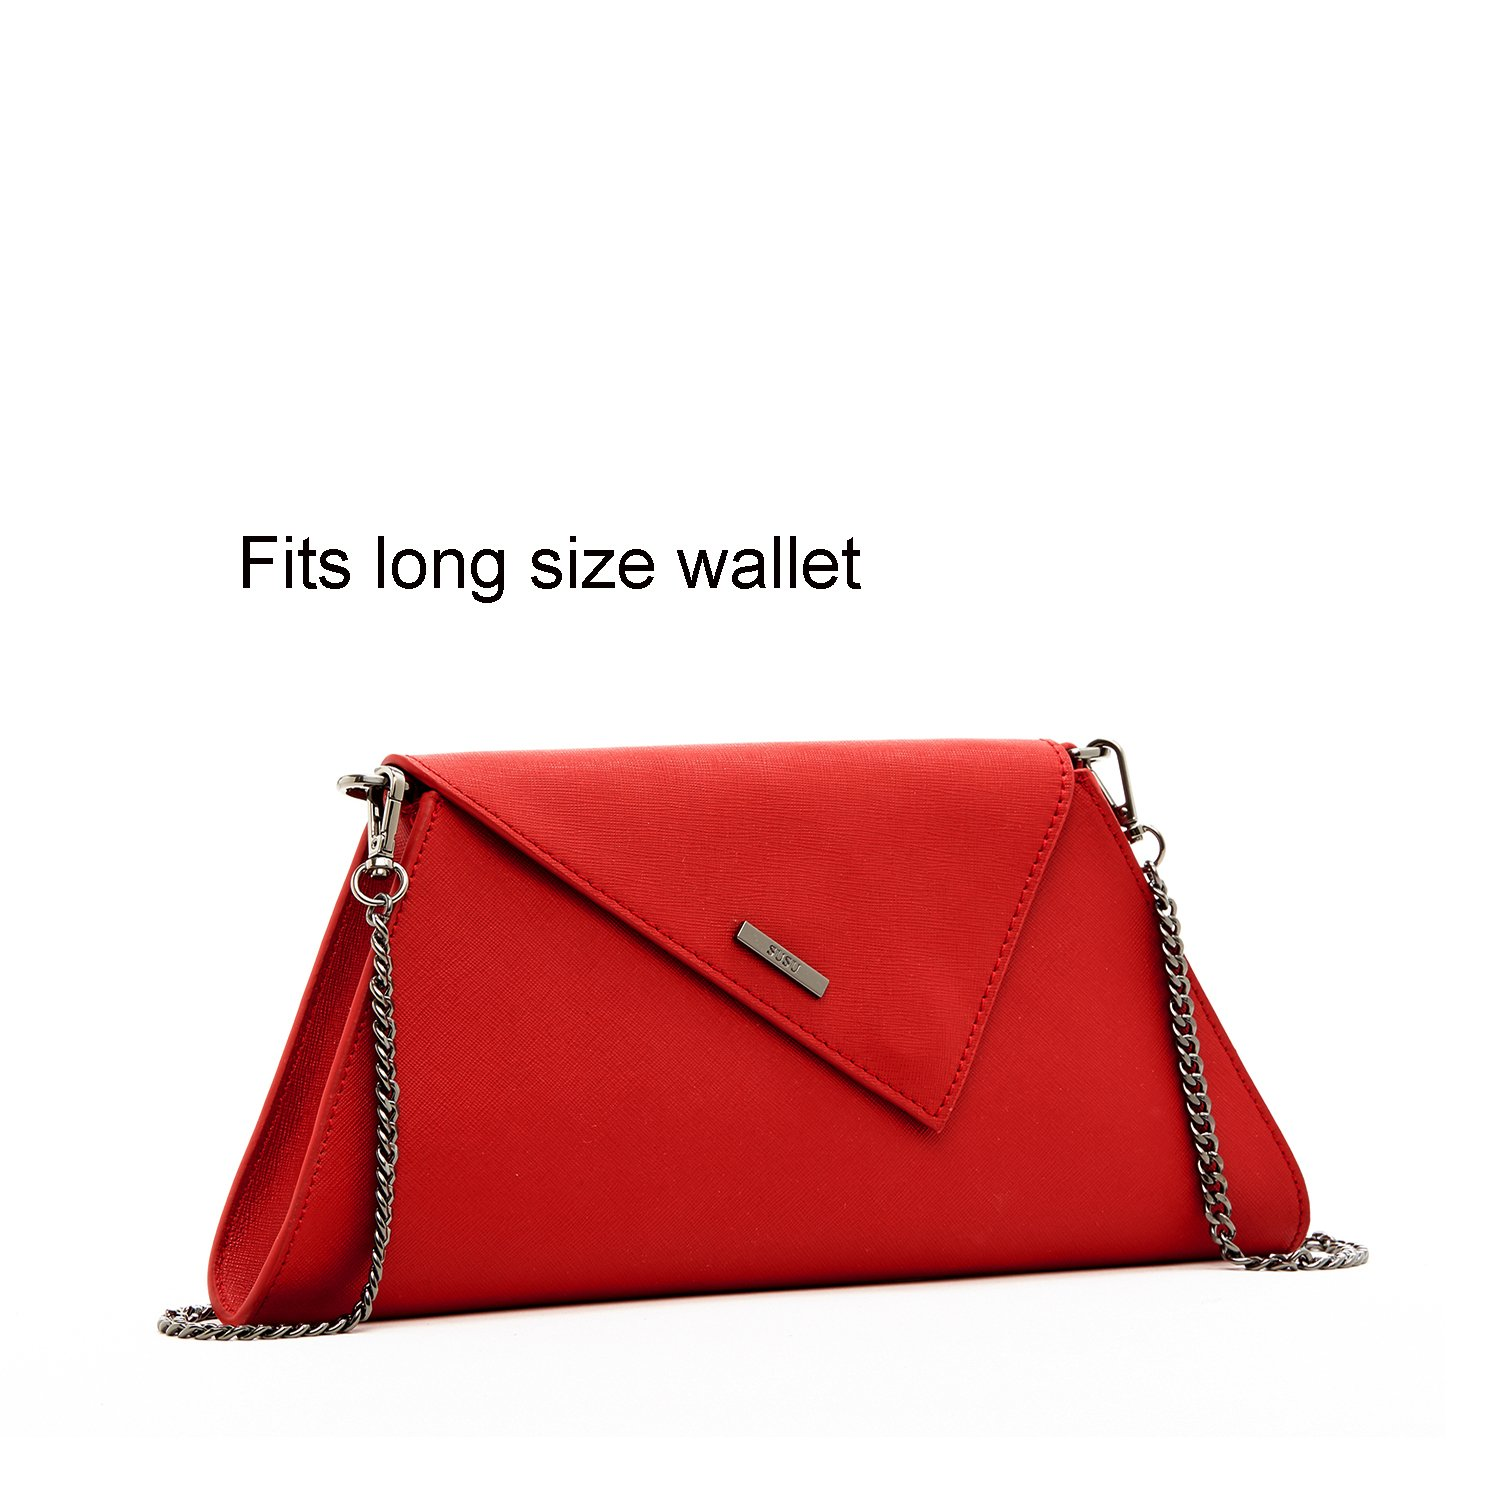 Red Clutch Purses For Women Crossbody Bags Cute Cross Body Fashion Small Purses and Handbags Luxury Party Light Gold Chain Strap Evening Bag Bright Colorful Bridal Wedding Gift by SUSU (Image #2)